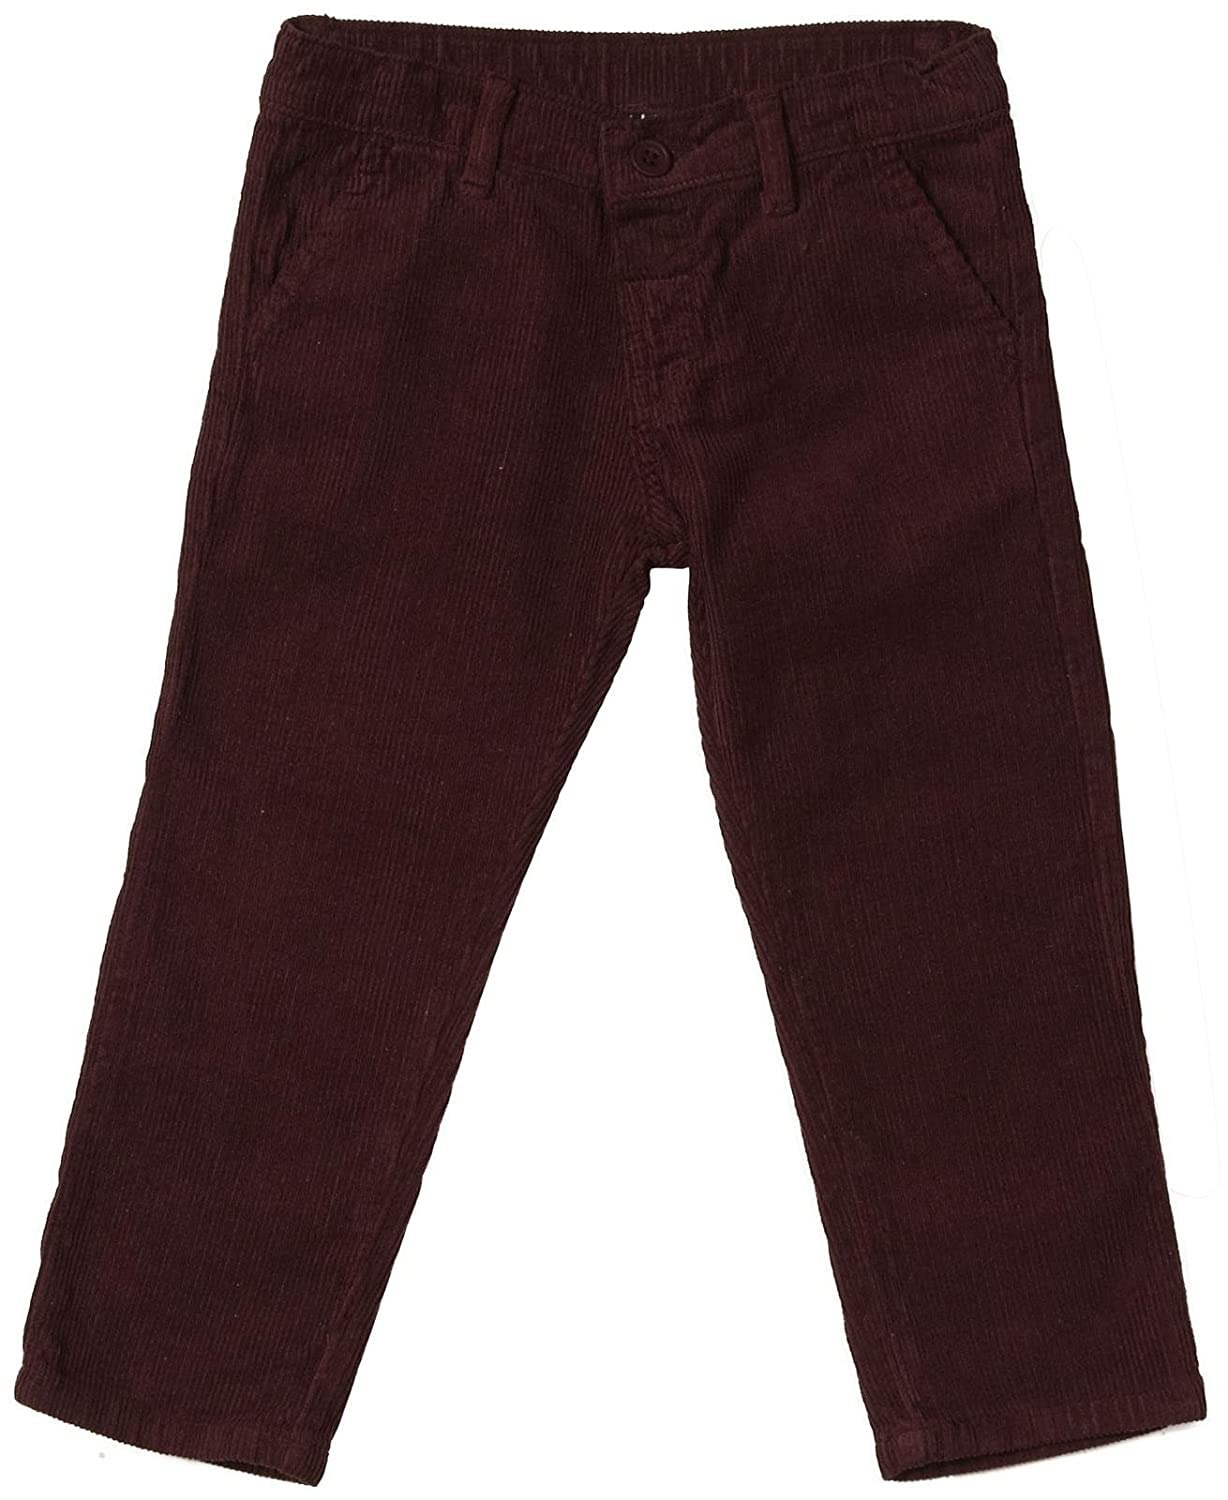 Girandola Big Boys' Pants Toddler Kid Maroon